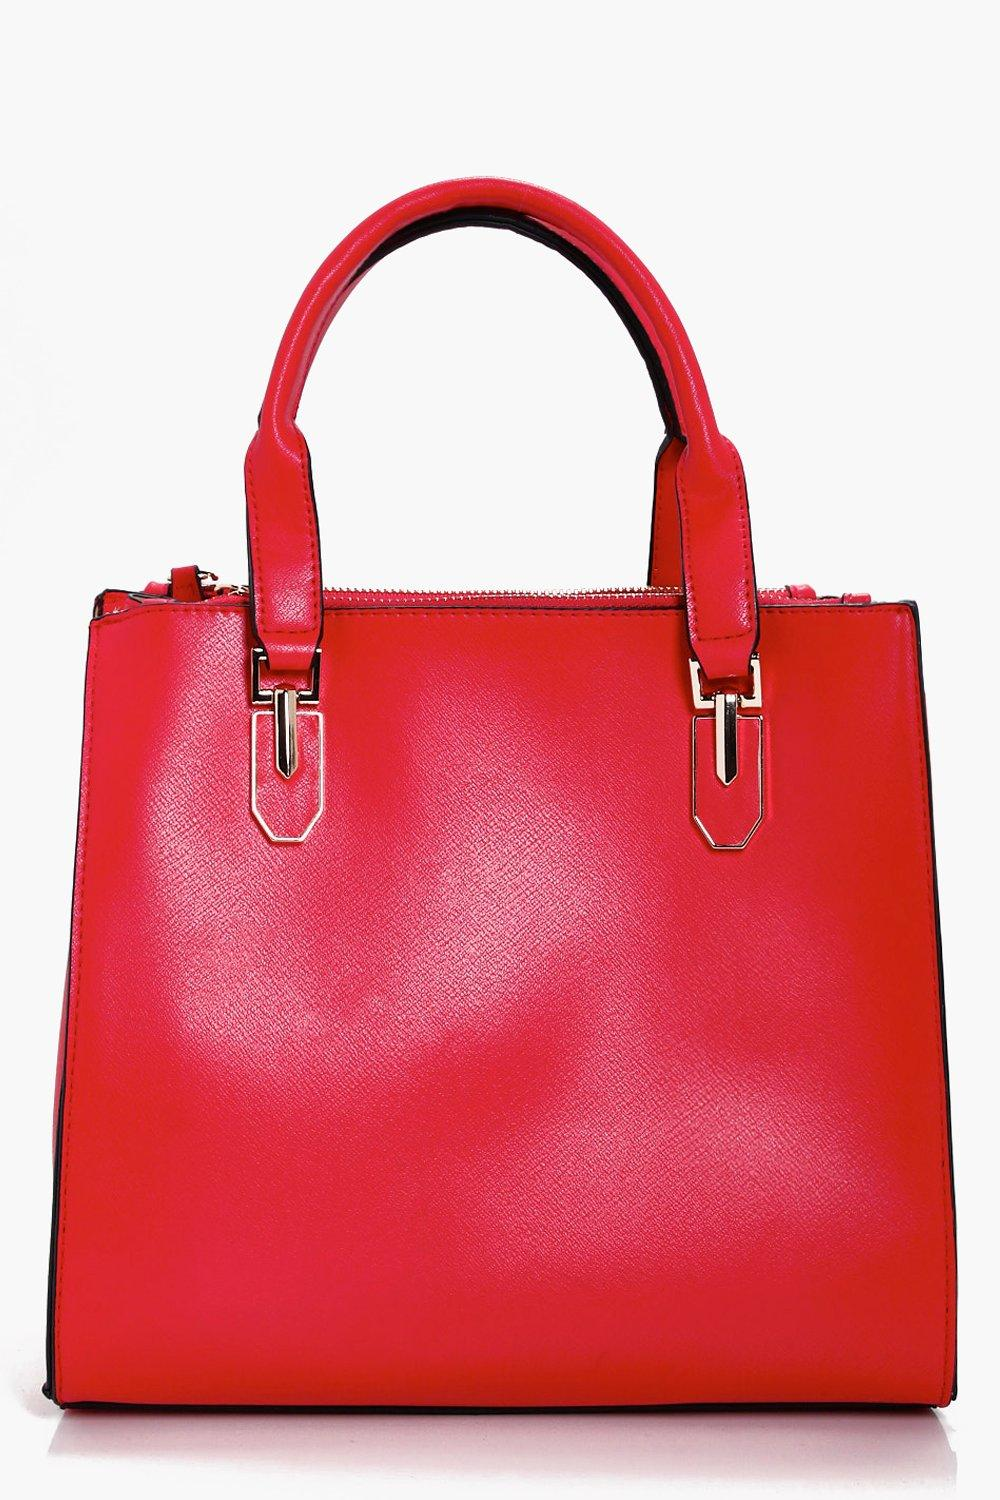 Statement Strap Mini Tote Cross Body Bag - red - H